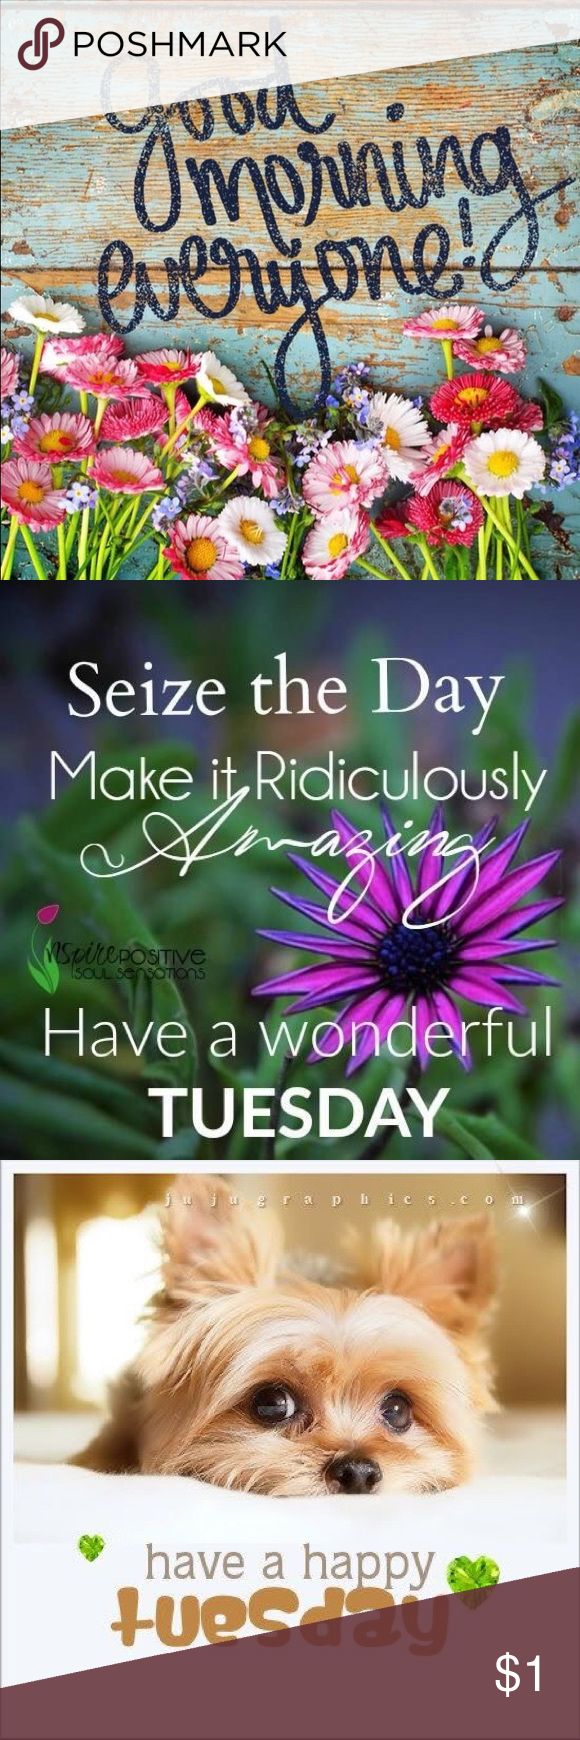 Tuesday for ladys